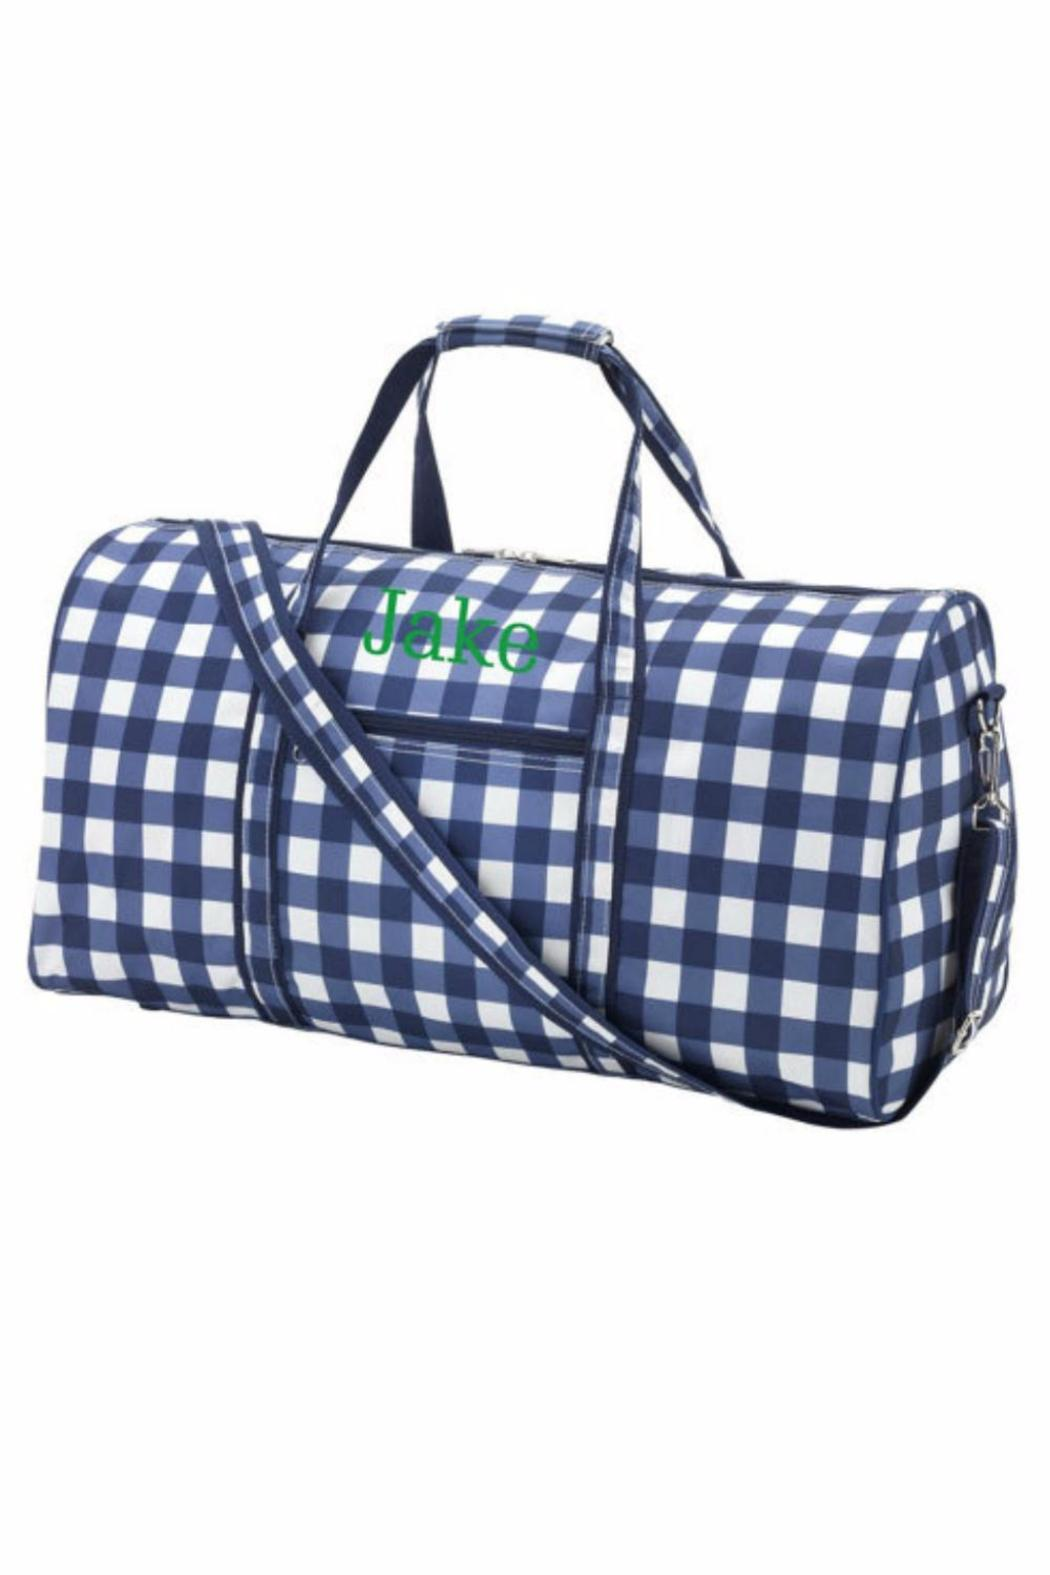 5d7dca15c07 Rolling Duffle Bags Wholesale   ReGreen Springfield